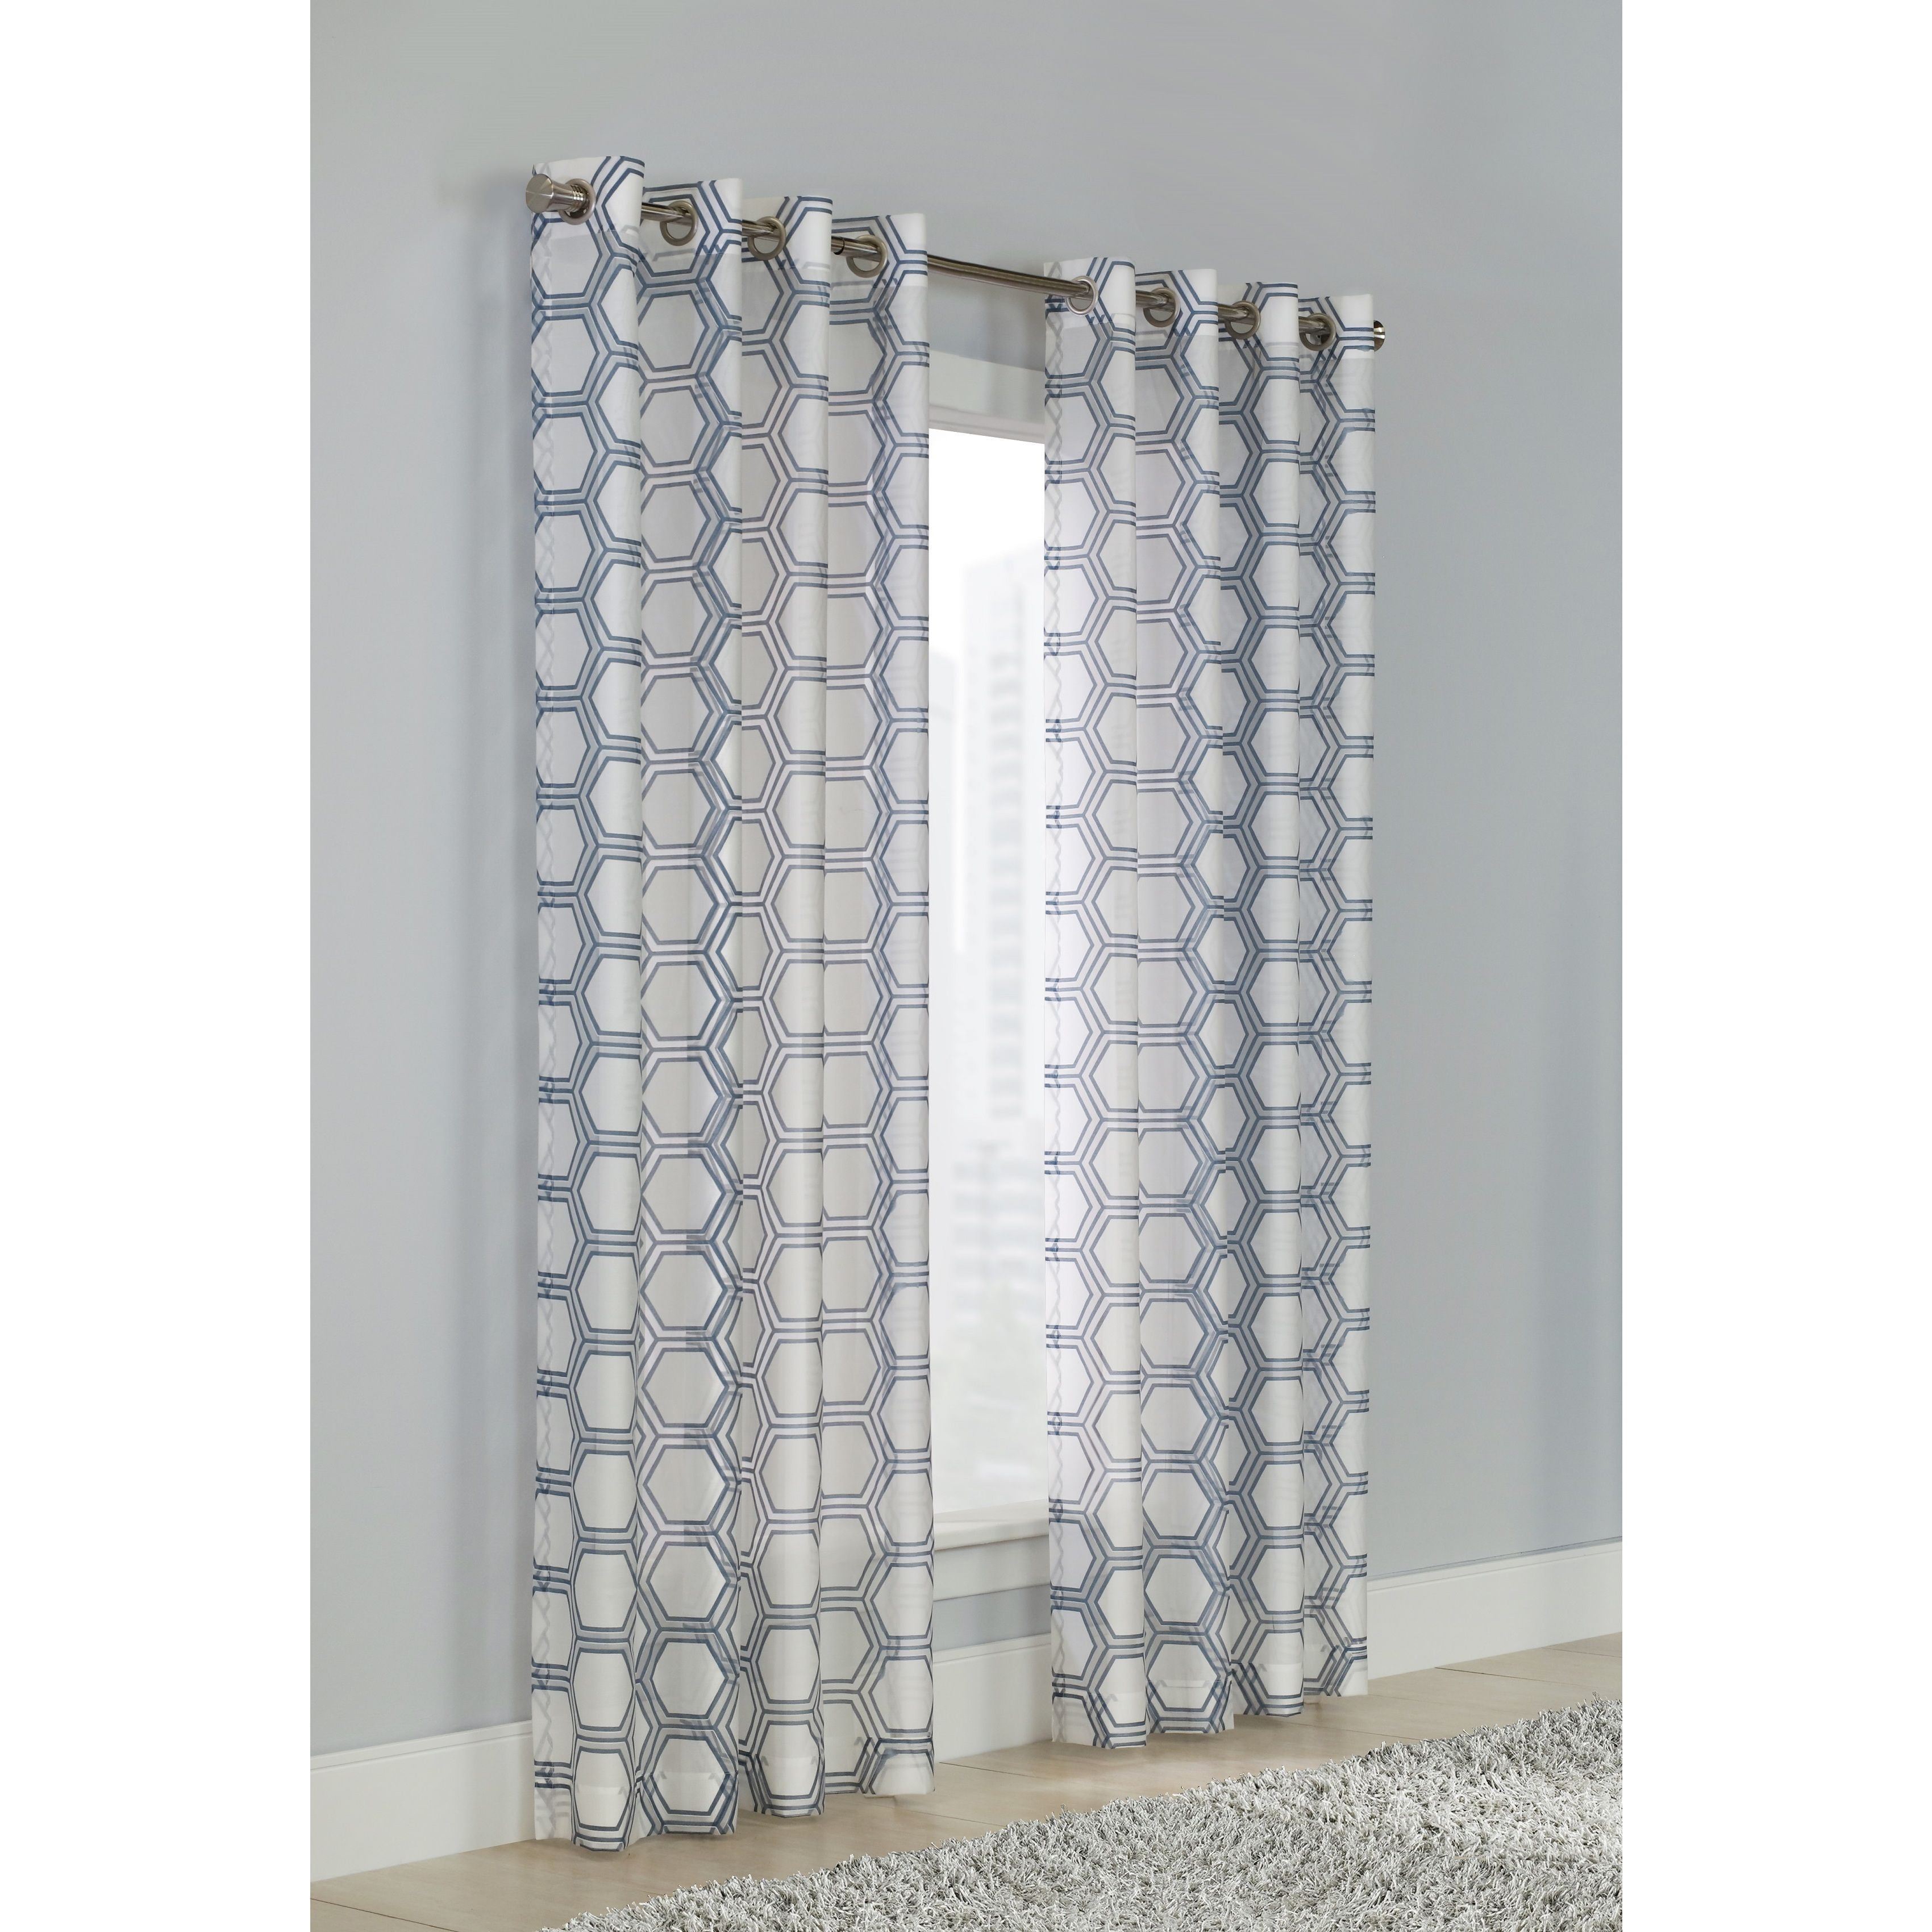 window living blackout shower blue com good and blinds charming curtain sheer at looking panels drapes room walmart curtains grommet lace white panel treatments bamboo